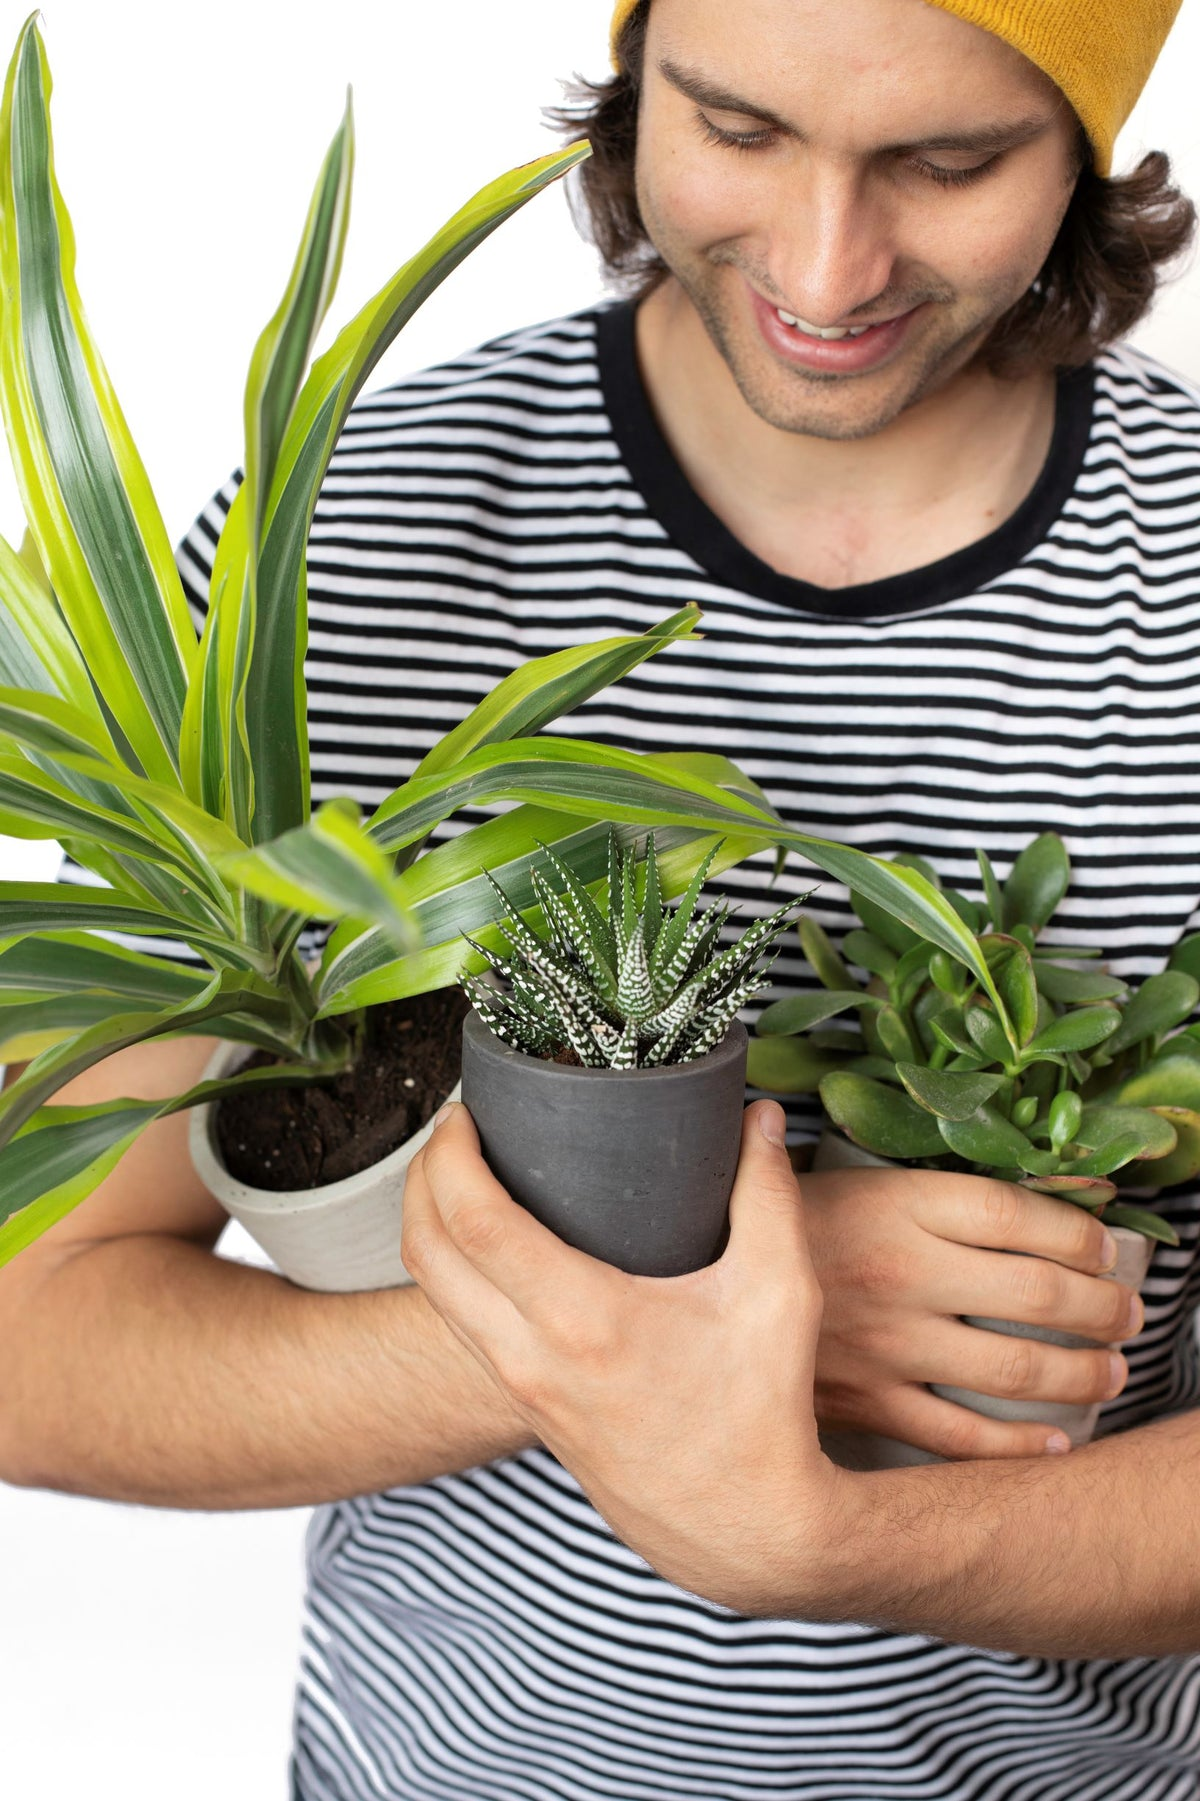 10 Questions with Desk Plants Founder Lawrence Hanley